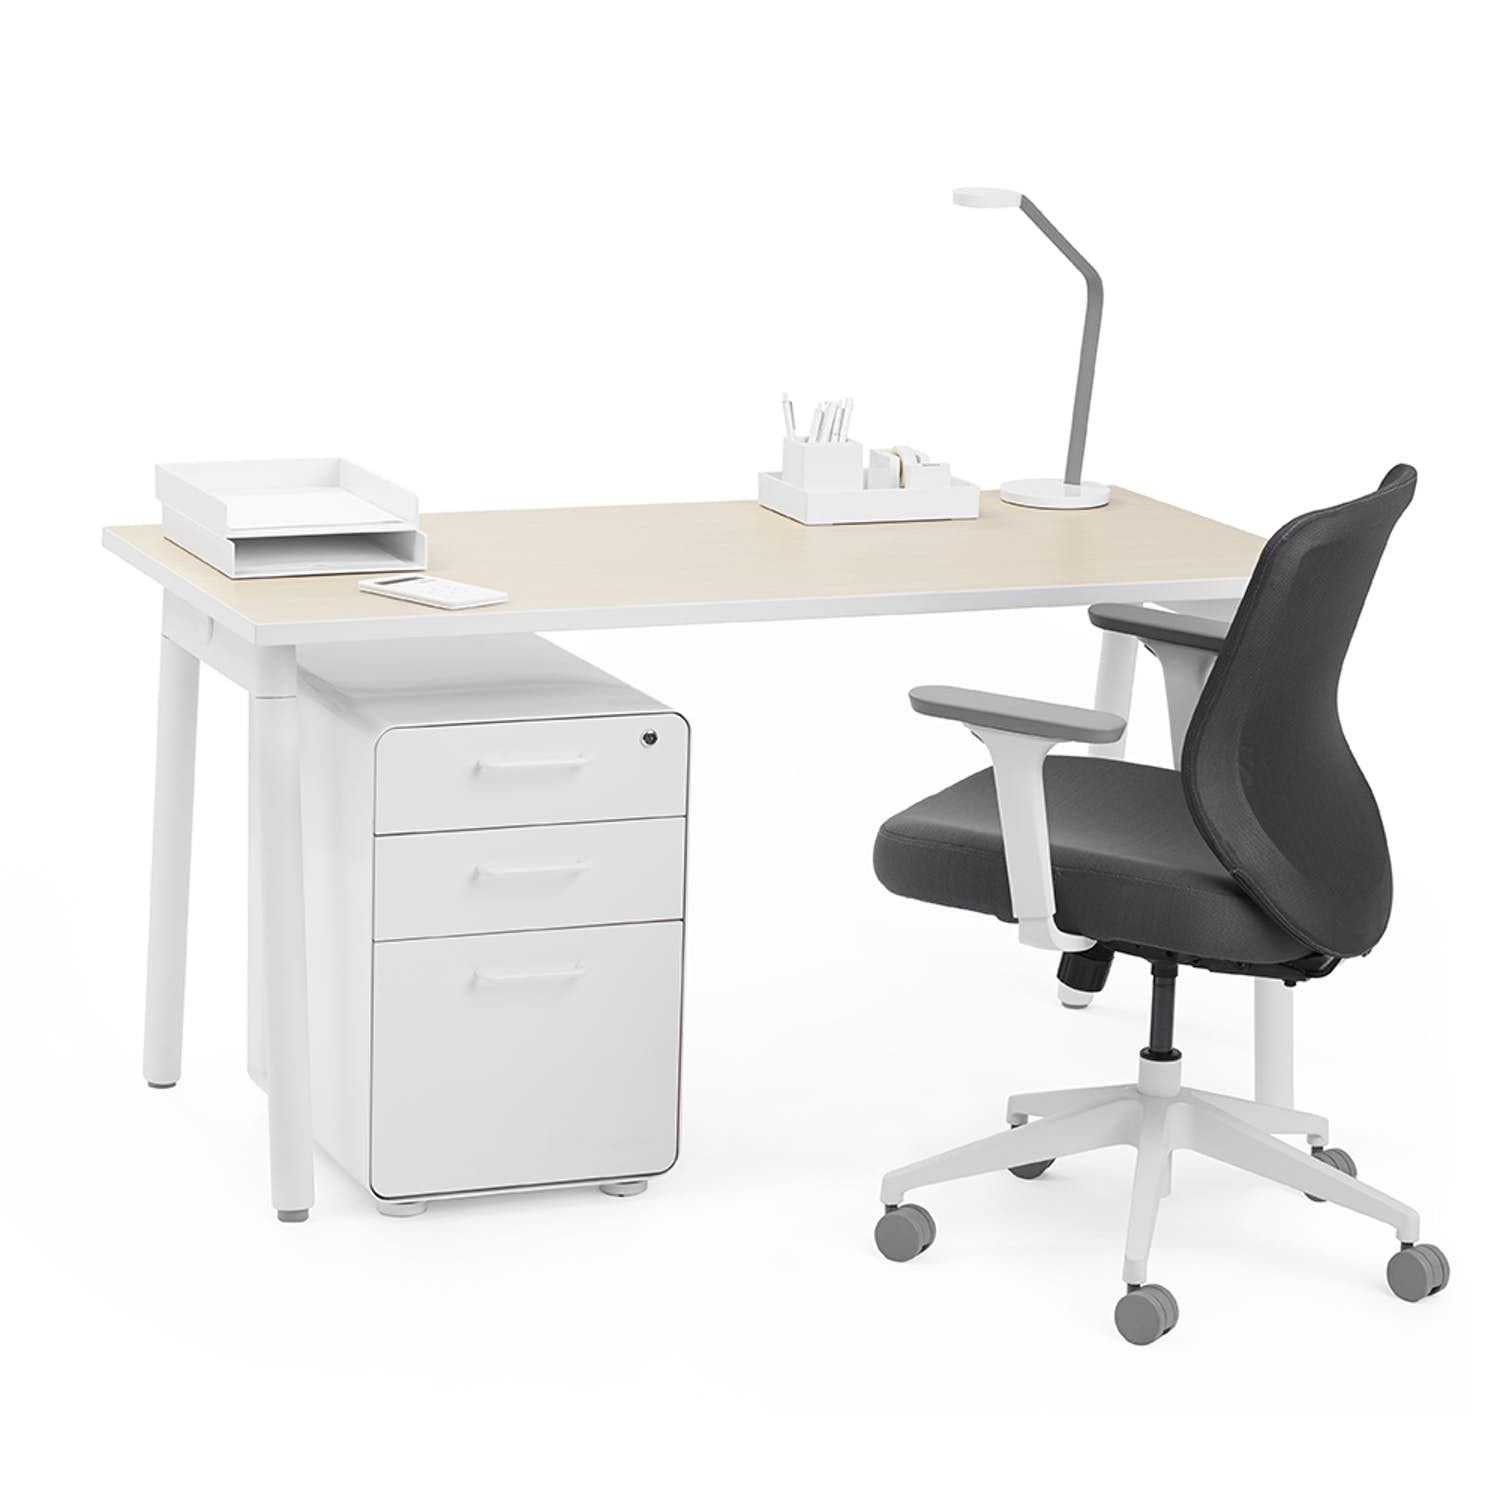 Series A Single Desk For 1 Natural Oak 47 White Legs White